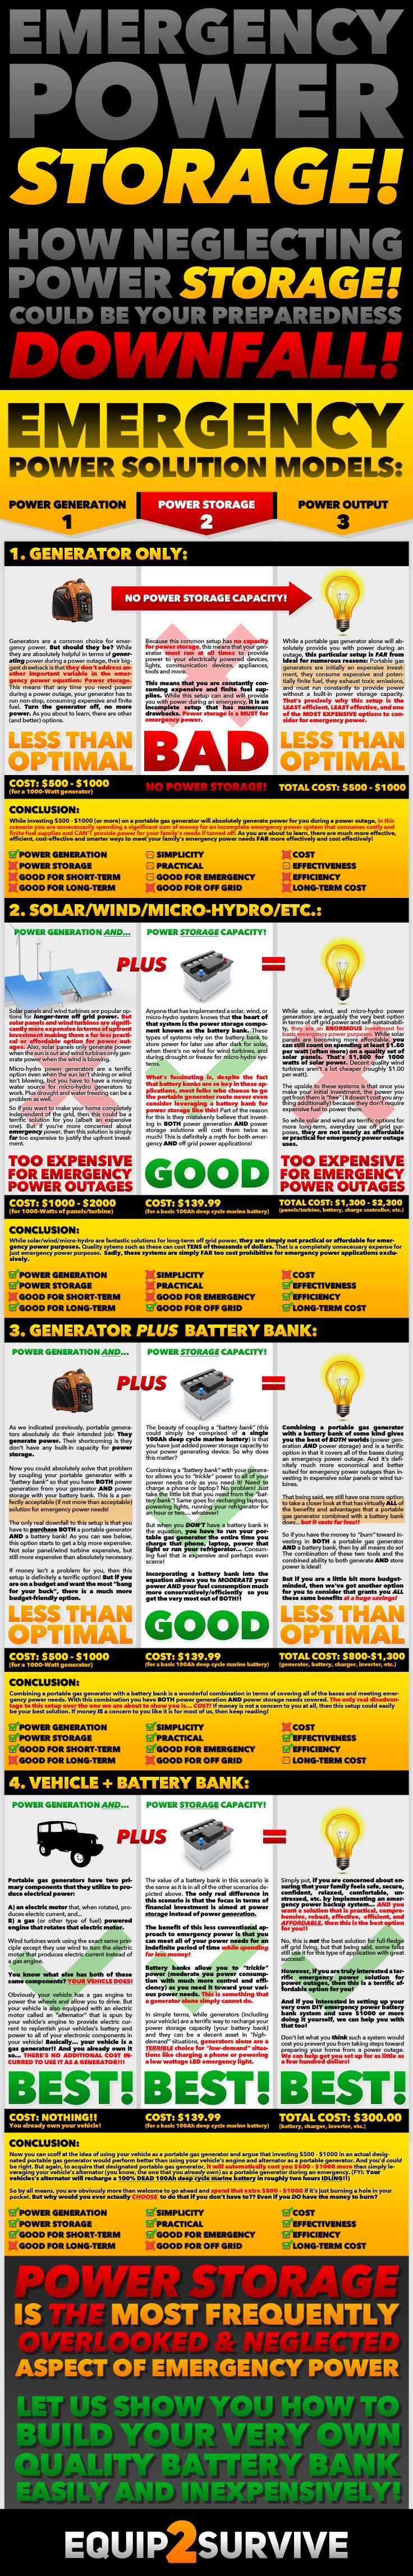 If you are concerned about power outages and ensuring that your family has power via a portable gas generator or an emergency power station / battery bank, then you MUST read this article before you make any final decisions or purchases. This article could save you THOUSANDS of dollars setting your home up to be blackout proof easily and inexpensively!! You can even restore your home WIFI/internet during a power outage with this info (in most cases)!! Incredible information!!!